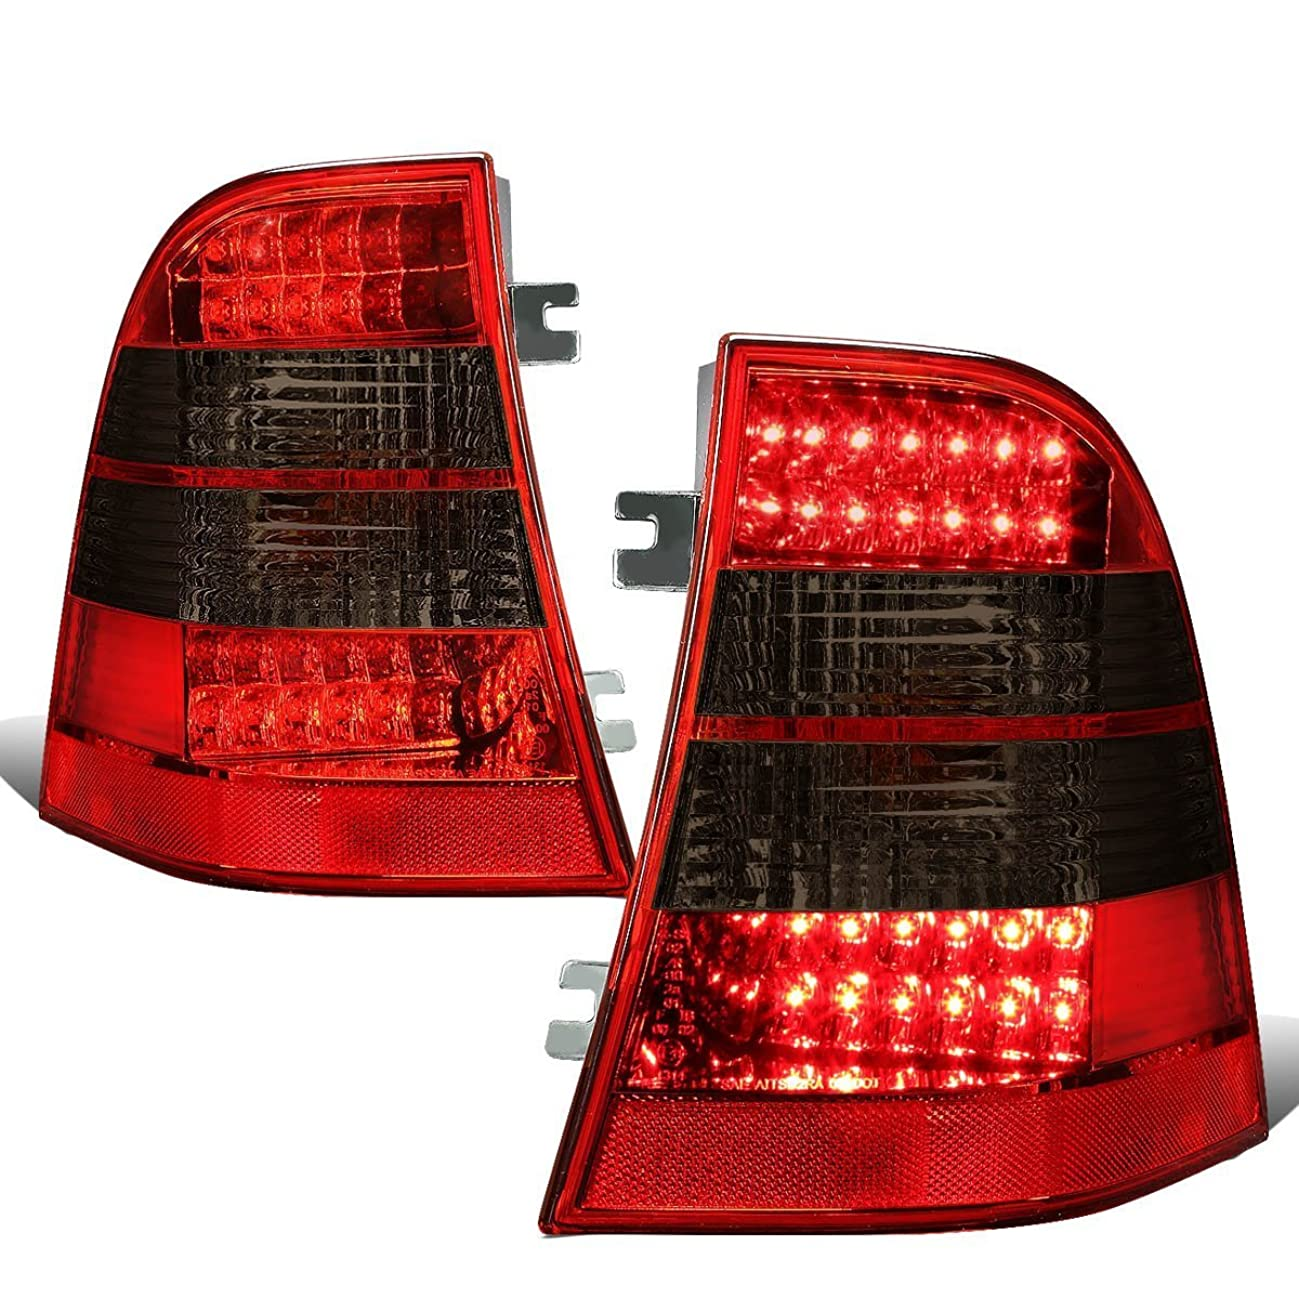 DNAMotoring TL-LED-W163-RD-SM Tail Light Assembly, Driver and Passenger Side